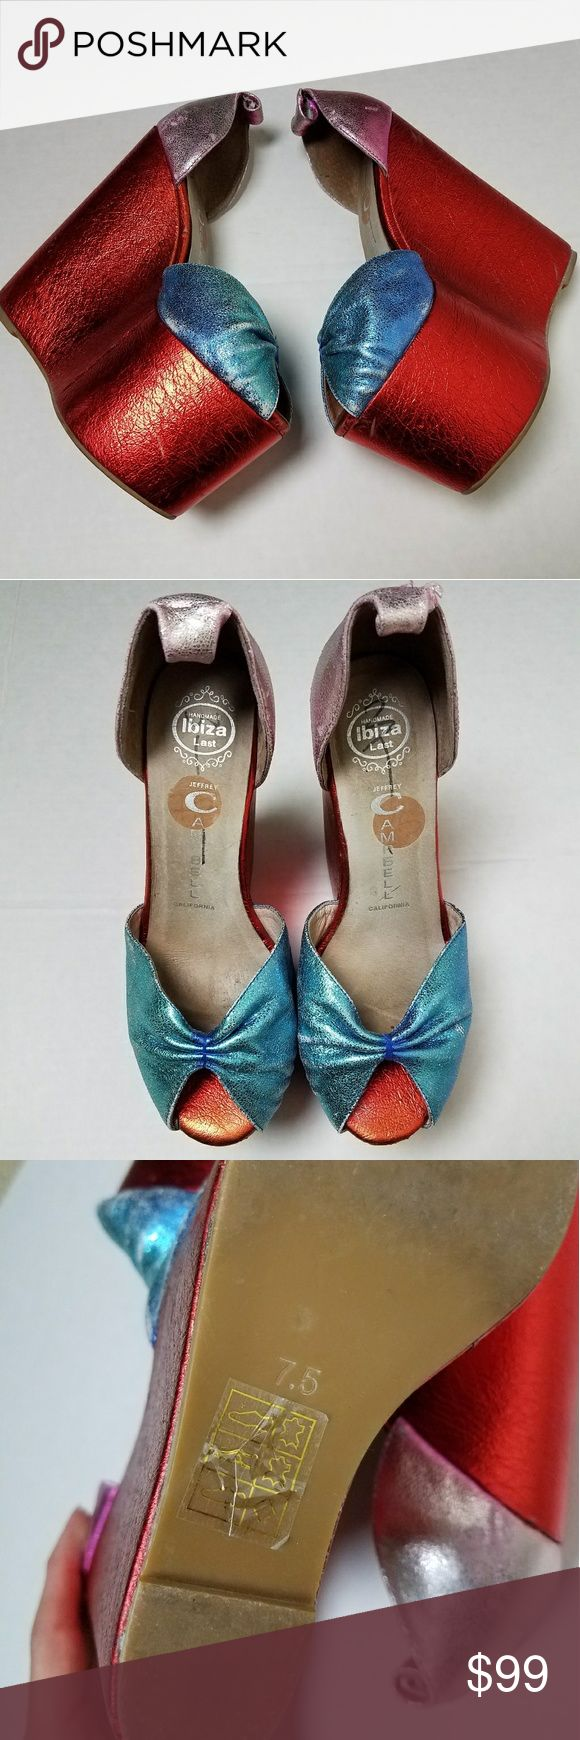 """Candy Foil Jeffrey Campbell Platform Wedge Shoes 7 *Price is being determined*  These shoes are insane!  Super colorful with a bright foil coating in candy apple red and blue upper area. The top heel area is a pink color. These are very previously well - loved and the foil is flaking in several sections. There is also a marking of what looks like a black """"3"""" written in the shoes.  But obviously when your wearing them no one will see this.   The color is also more faded particularly noticable…"""